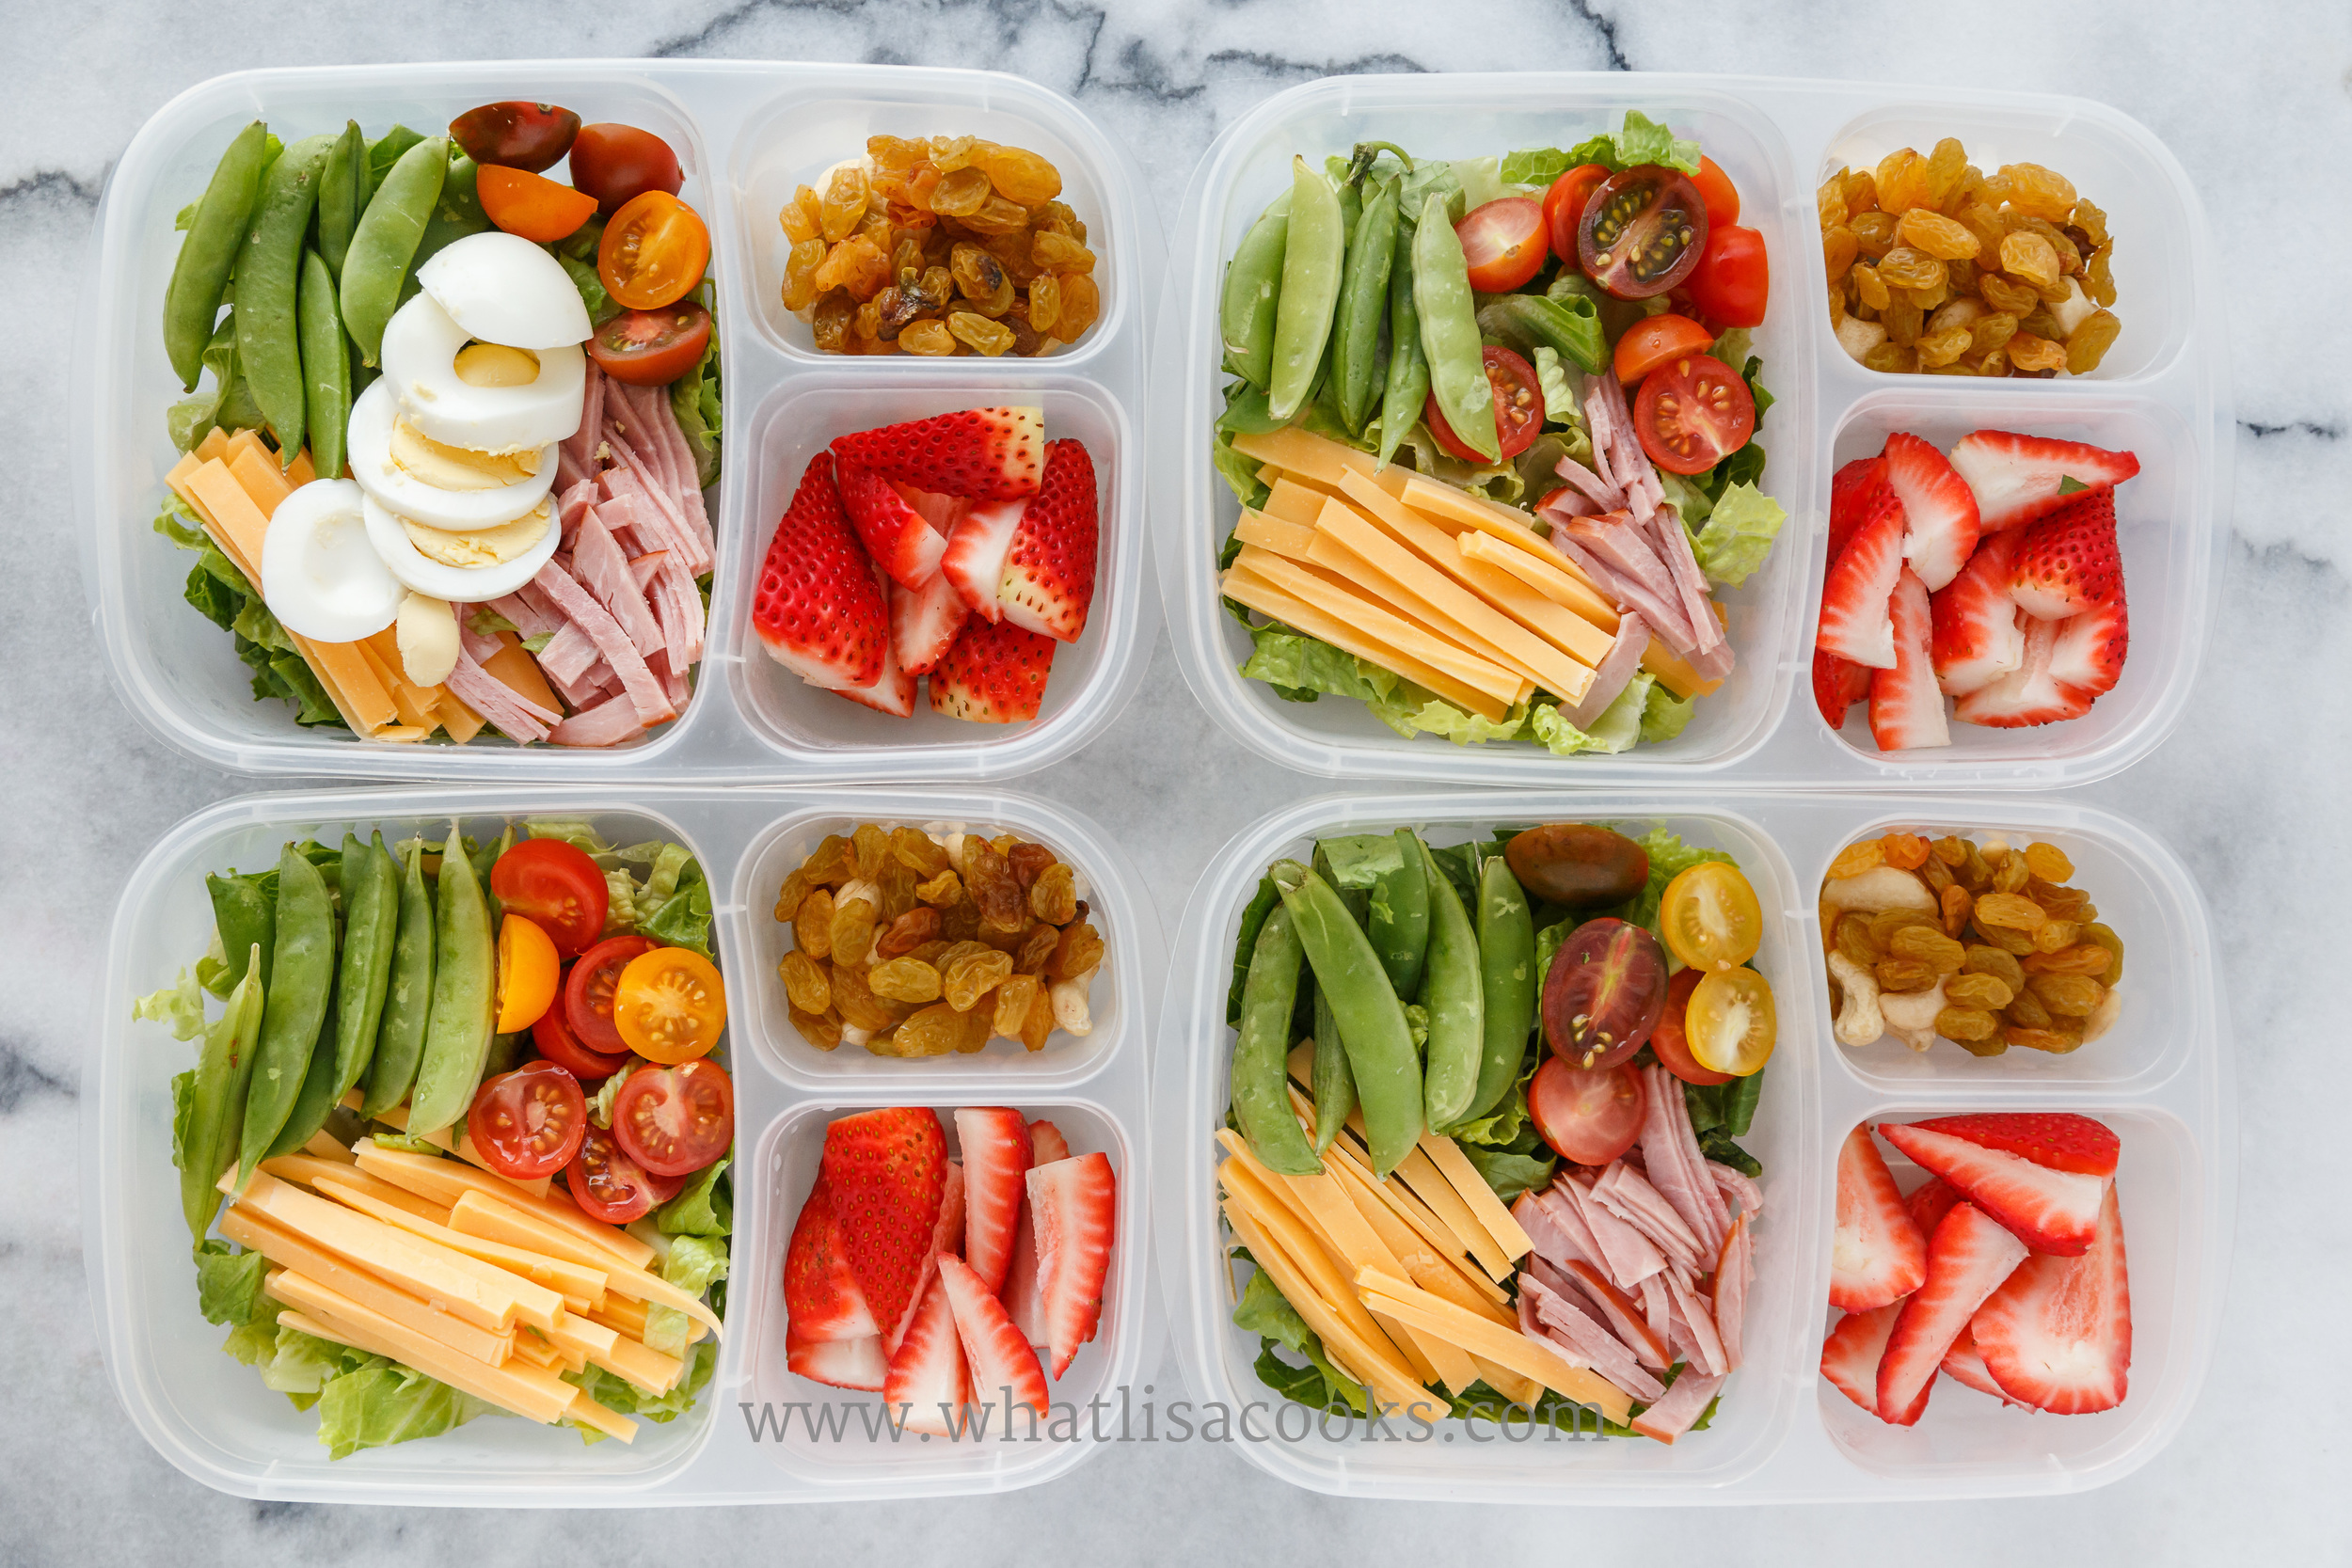 """Don't call it salad"".  My kids say they don't like salad, but they like all of this stuff!  Lettuce, tomatoes, cheddar cheese, ham, and sugar snap peas. One has sliced boiled egg. On the side: strawberries, raisins, and cashews. Packed in  Easy Lunchboxes ."